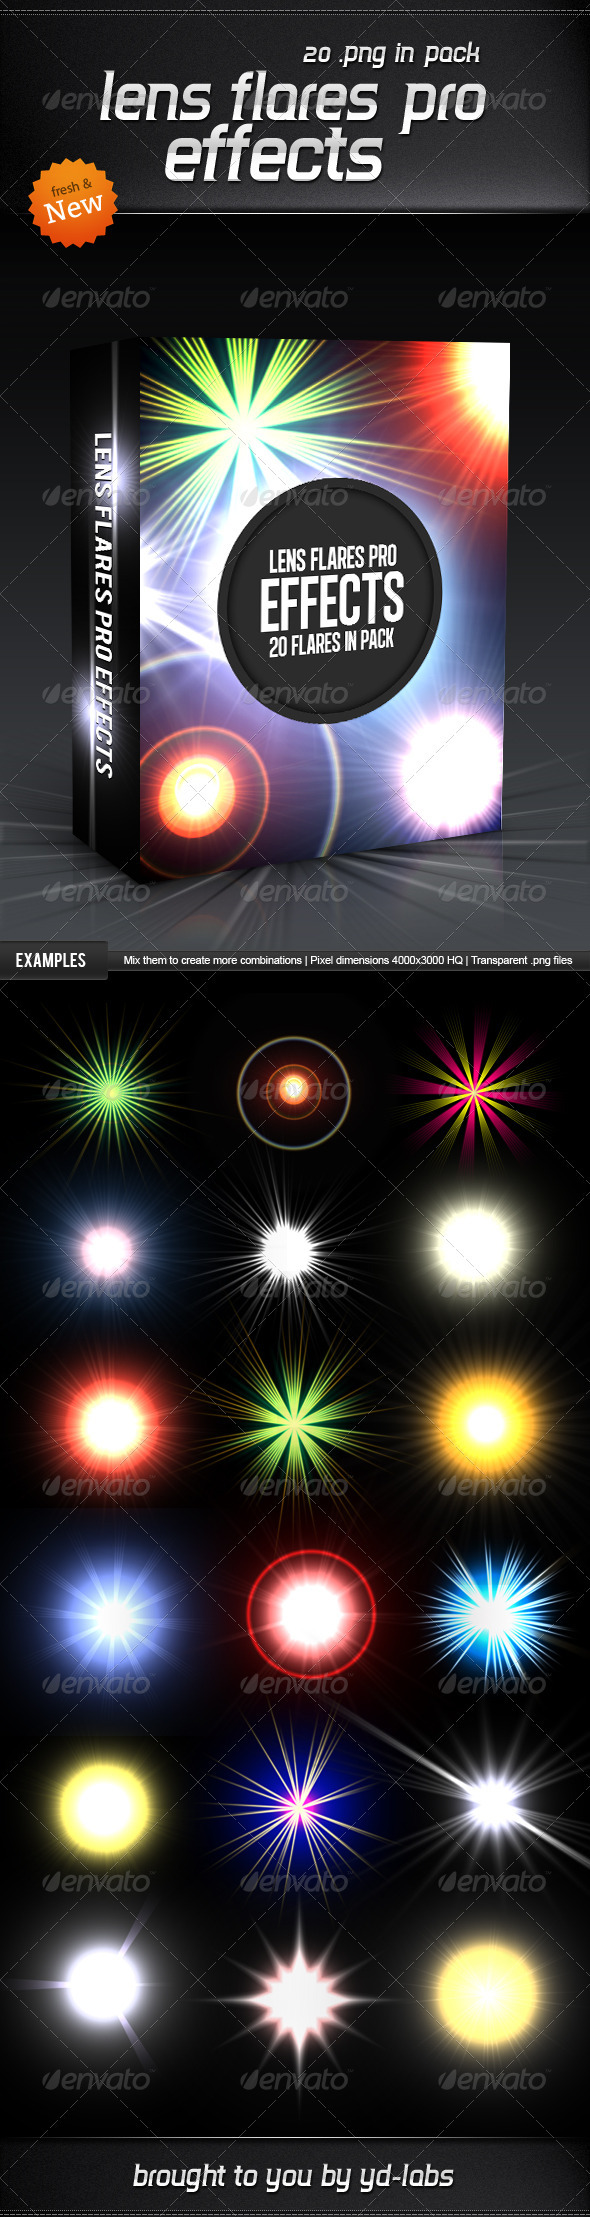 Lens Flares Pro Effects - Decorative Graphics